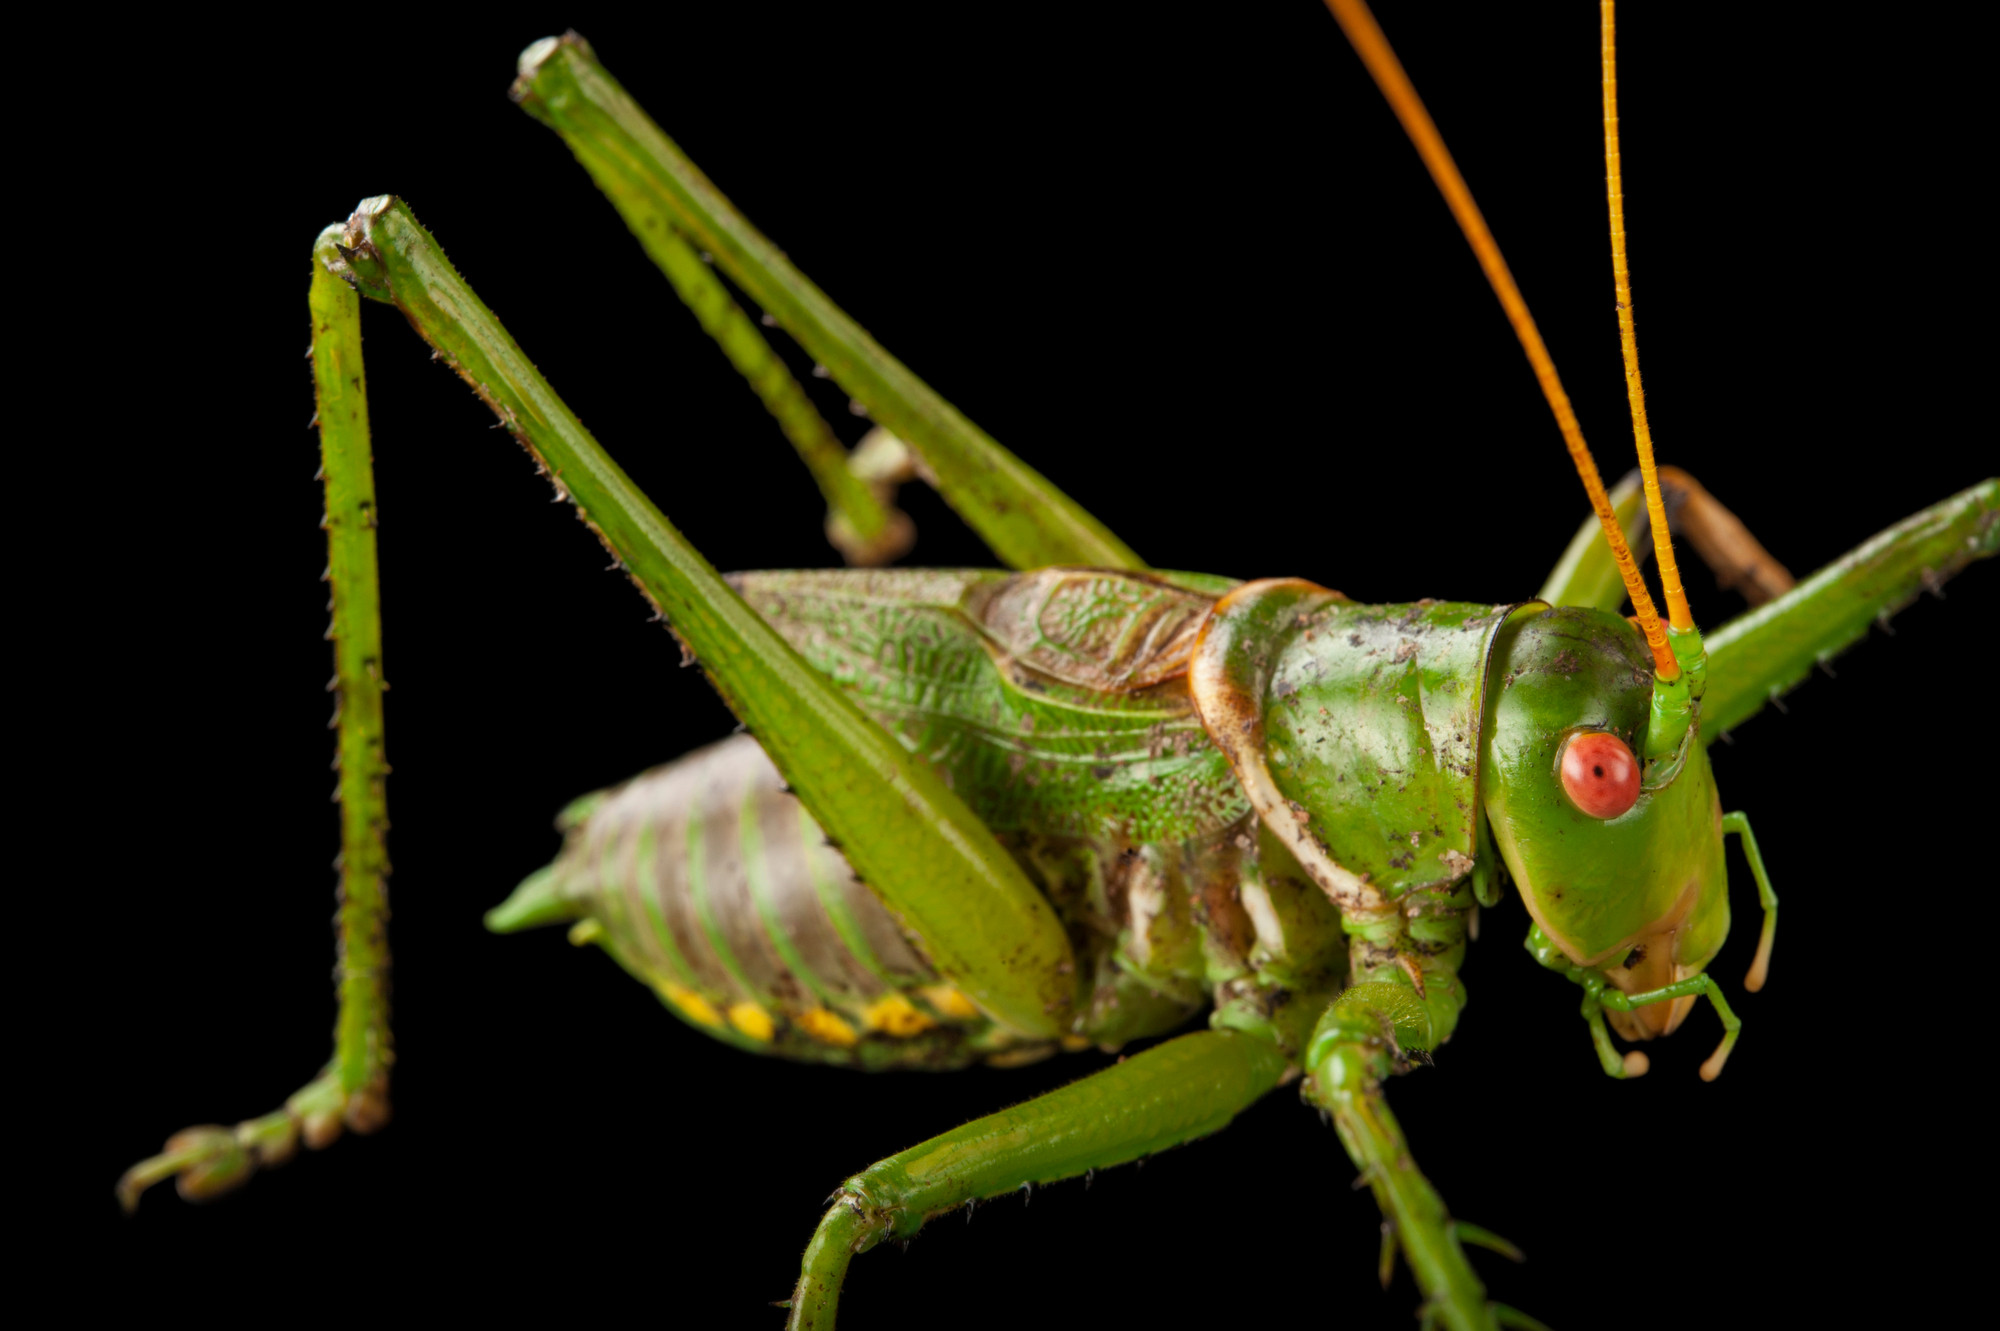 Photo: Greater arid-land katydid (Neobarrettia spinosa) at the Audubon Insectarium in New Orleans.